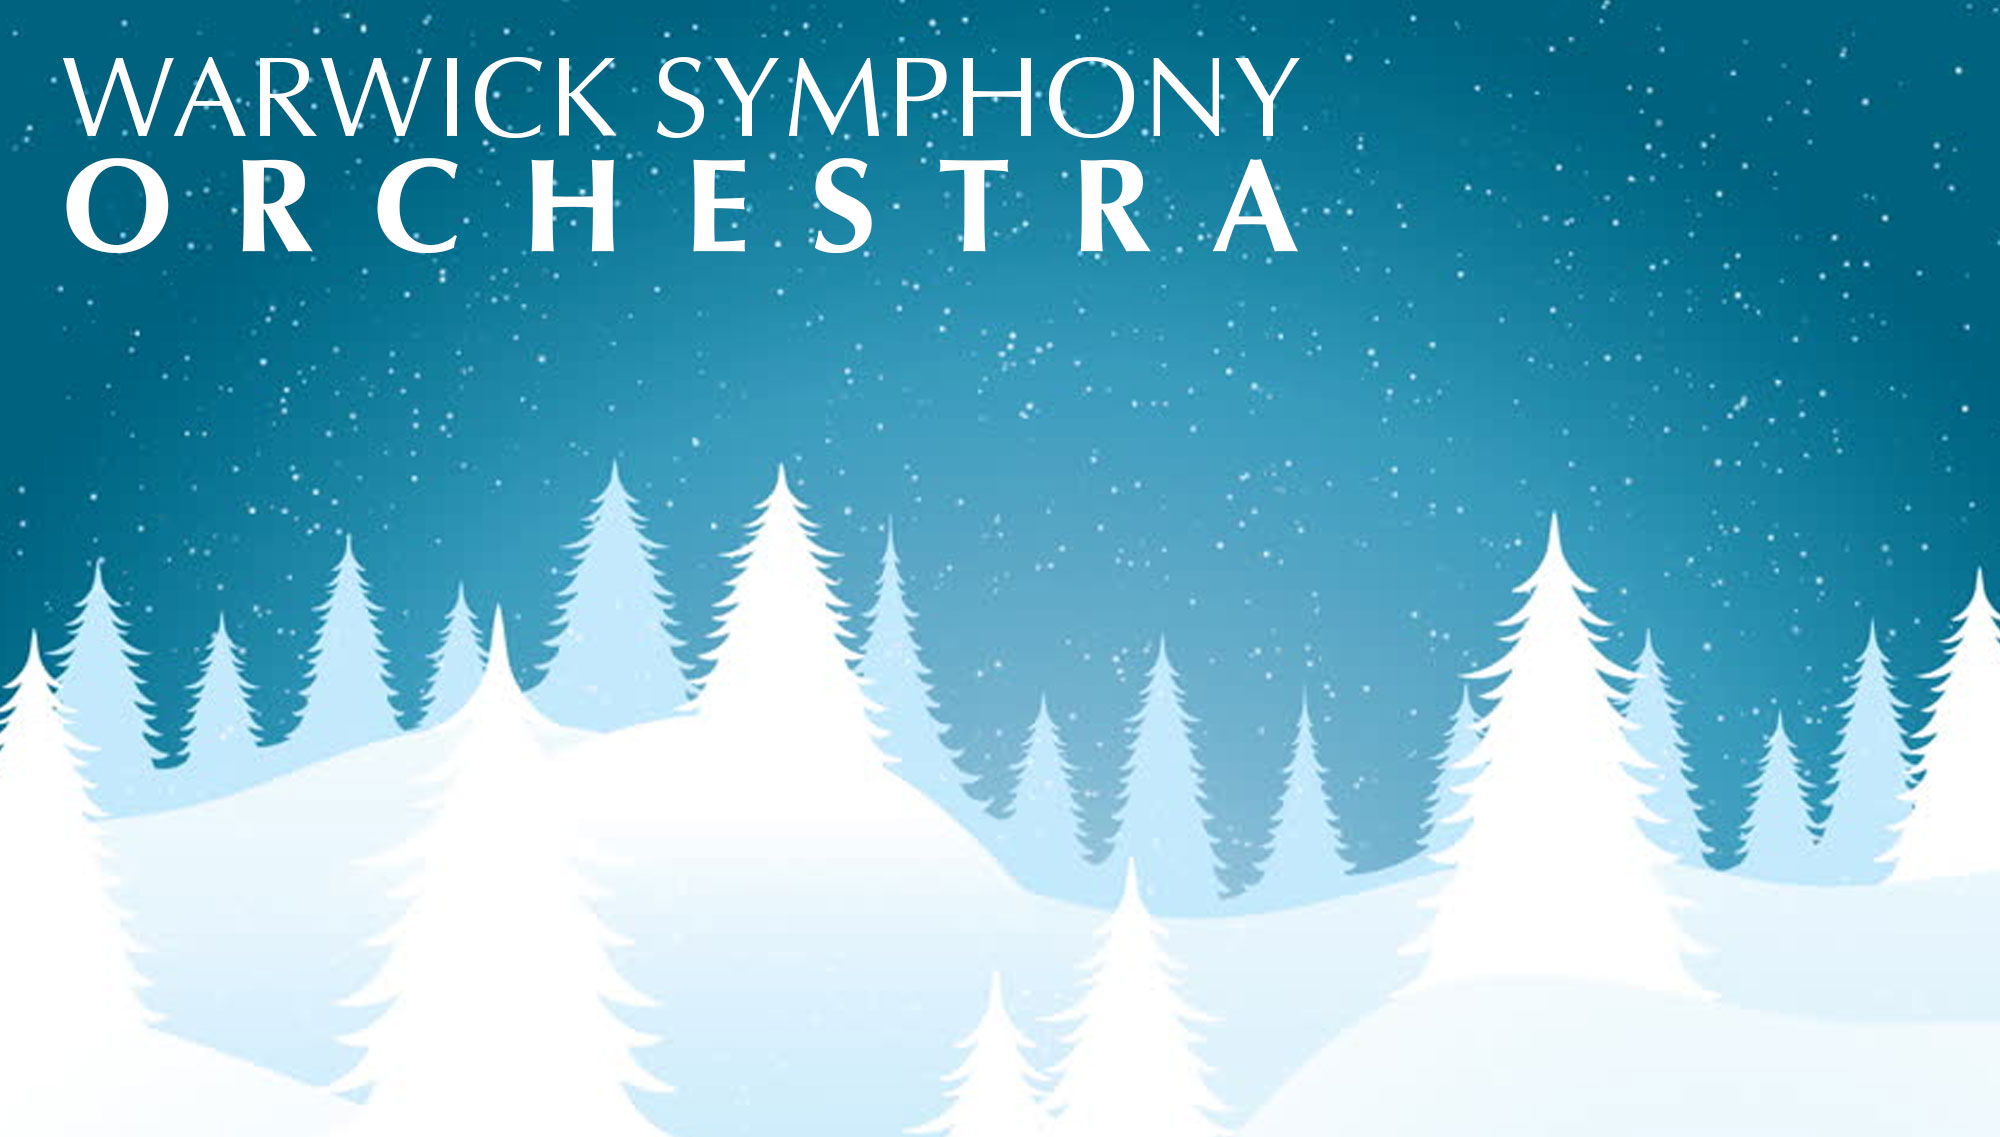 WARWICK SYMPHONY ORCHESTRA HOLIDAY PERFORMANCE  <H5>December 14  </h5>